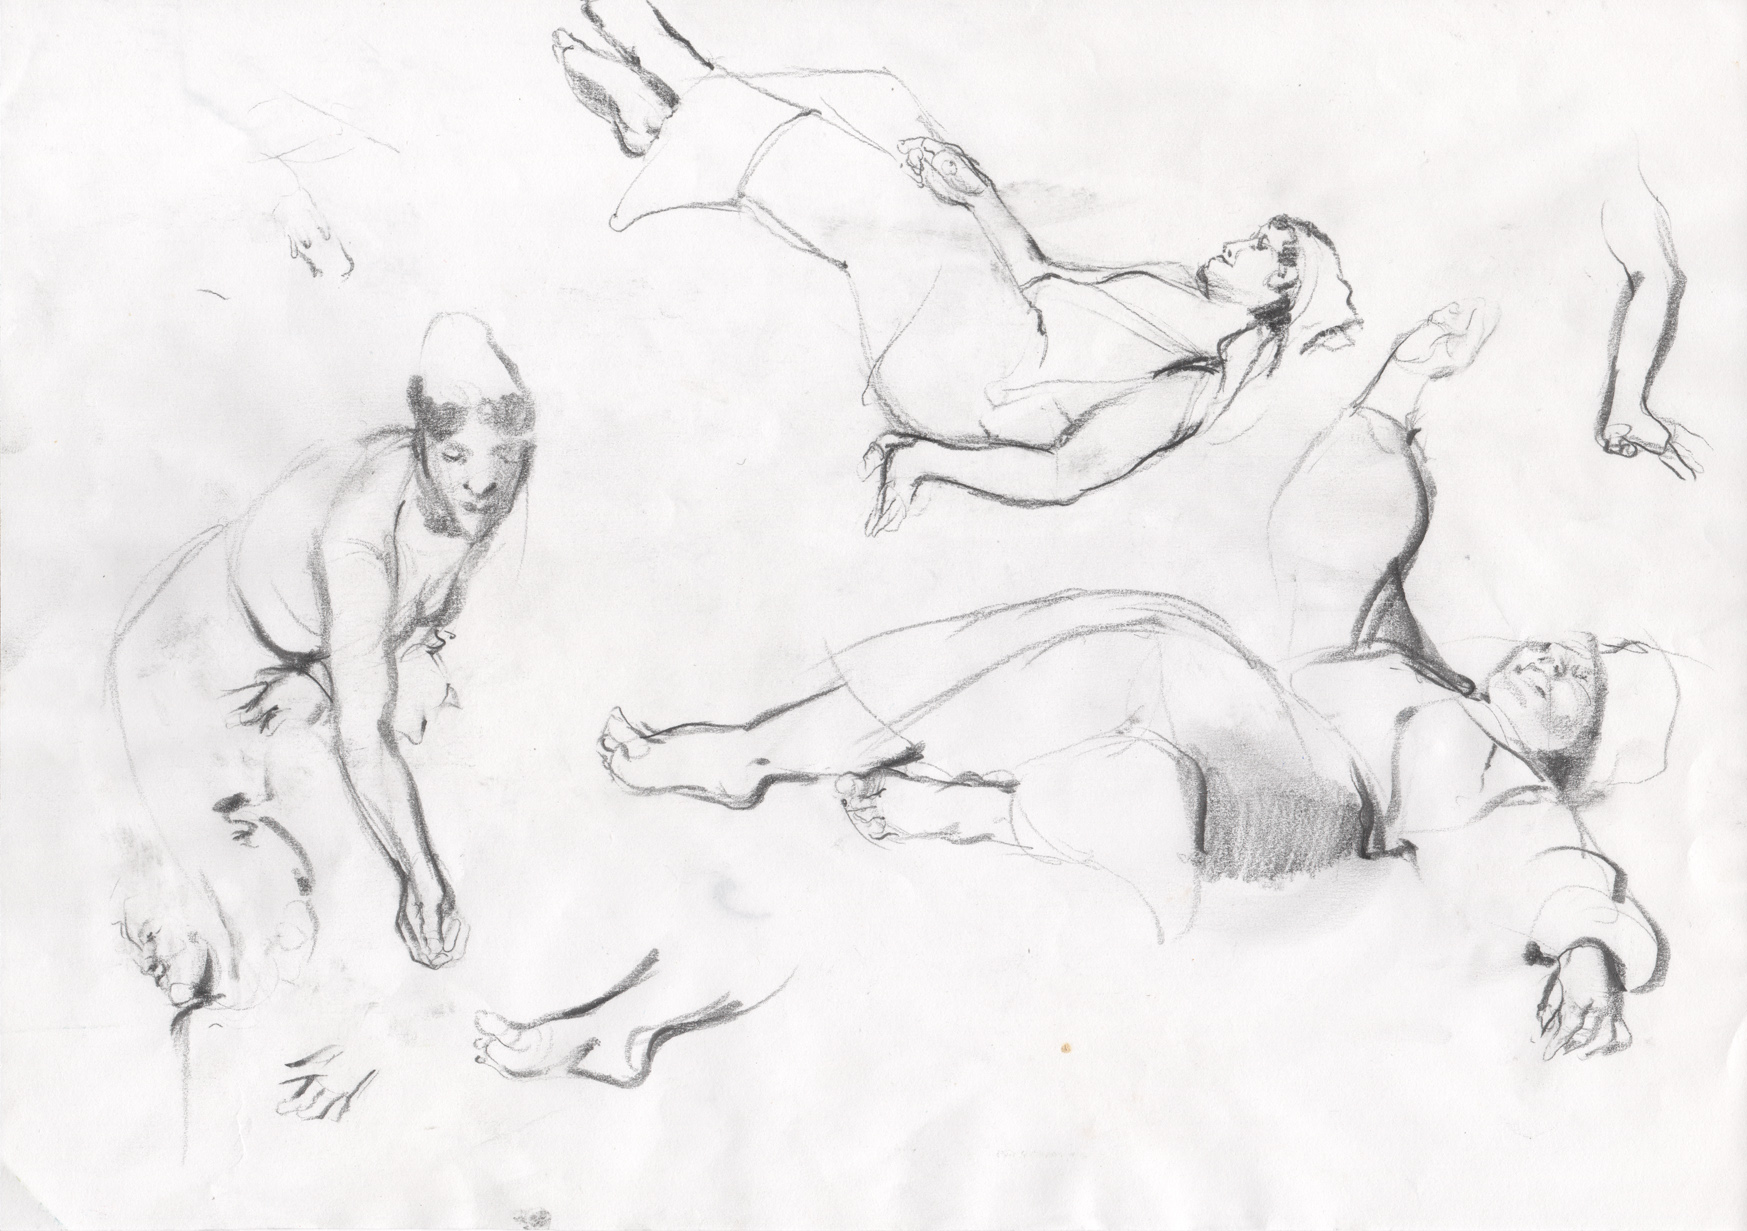 The sketches of figures I